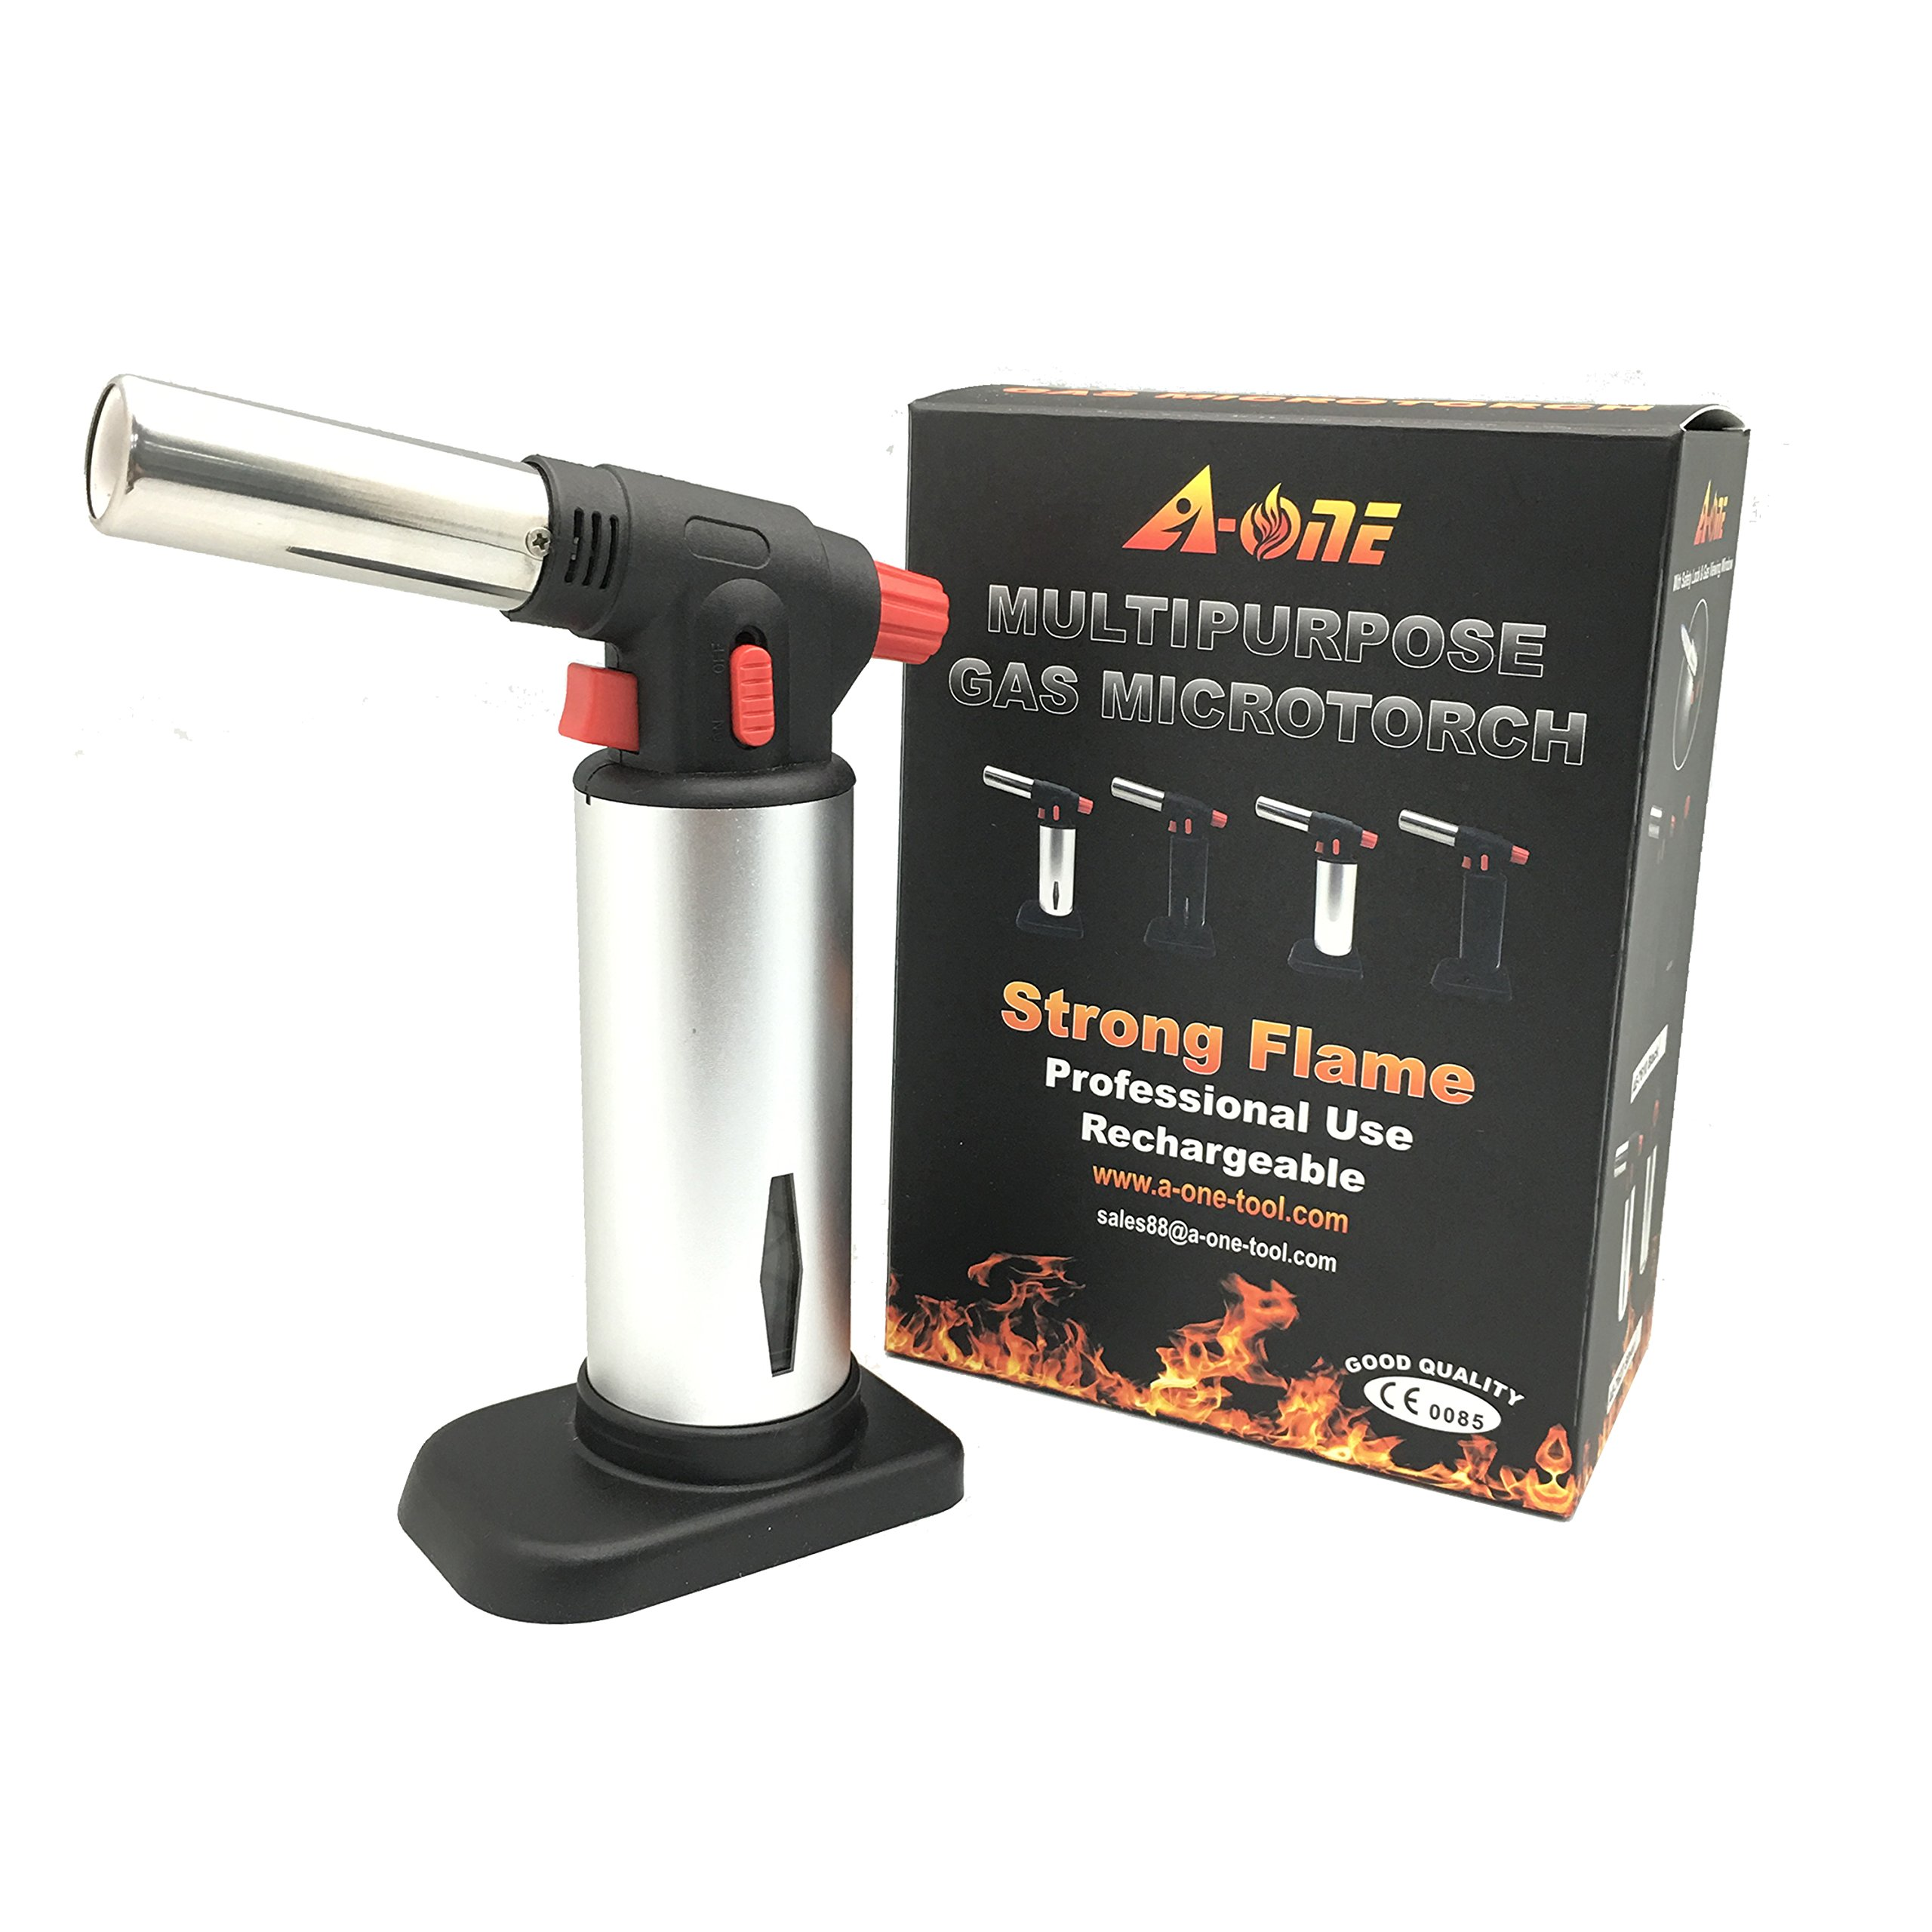 A-ONE Silver Kitchen Creme Brulee Blow Torch